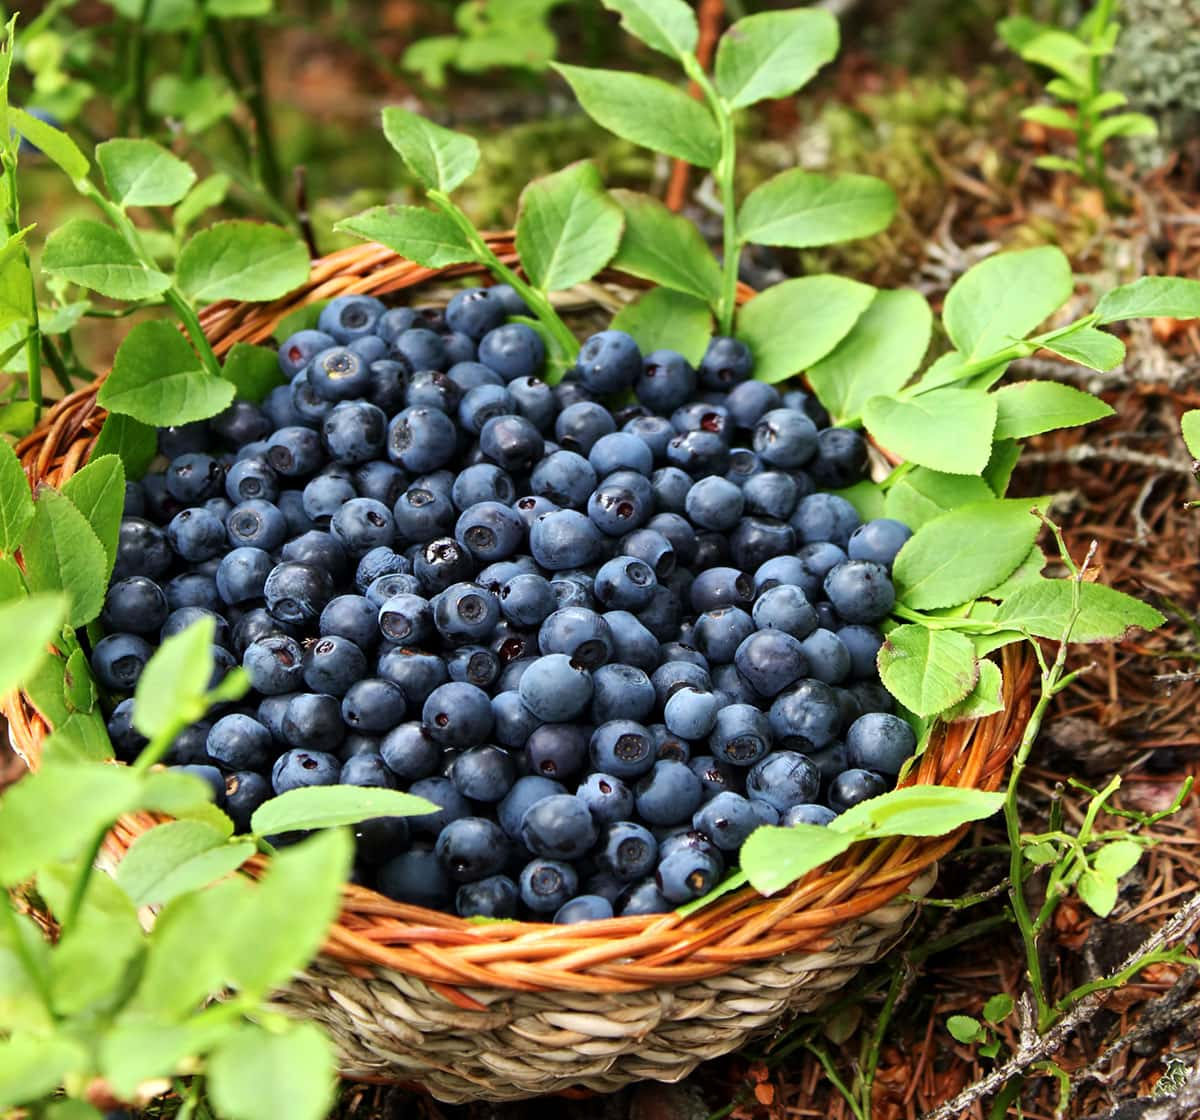 blueberries in a basket on the ground